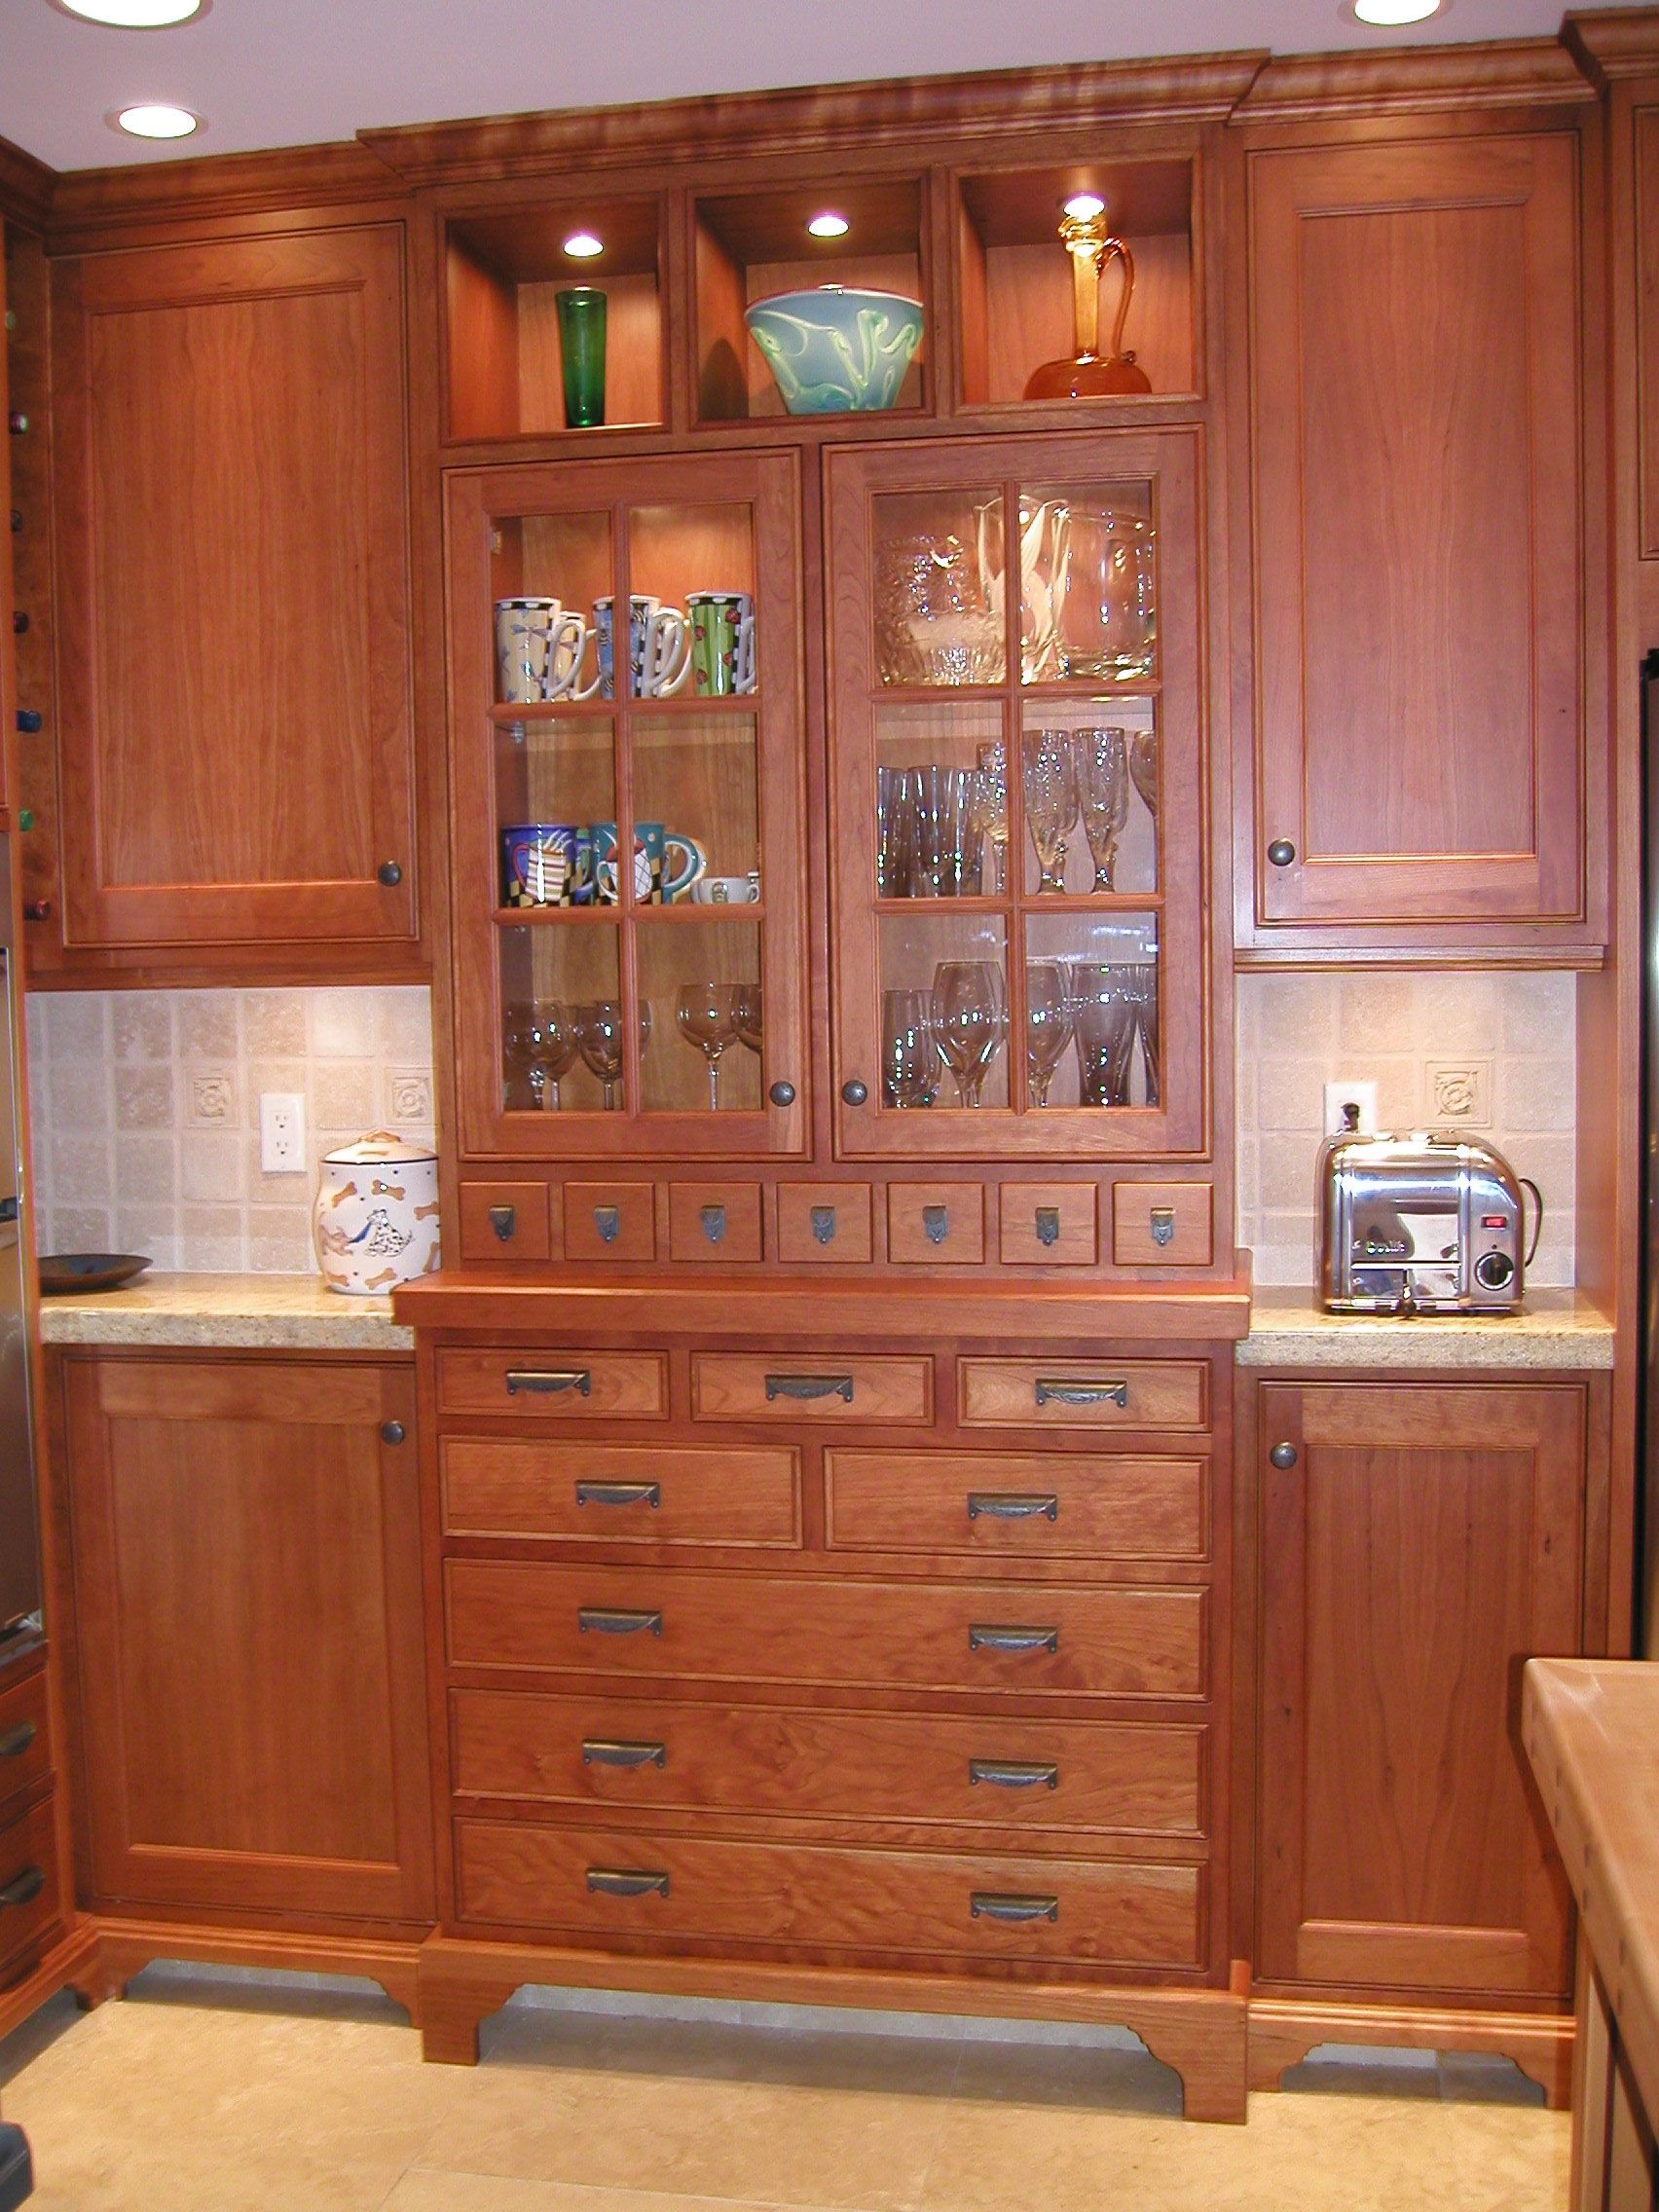 Mission Style Cabinet Doors Elegant Mission Style Kitchen Cabinets Pictures